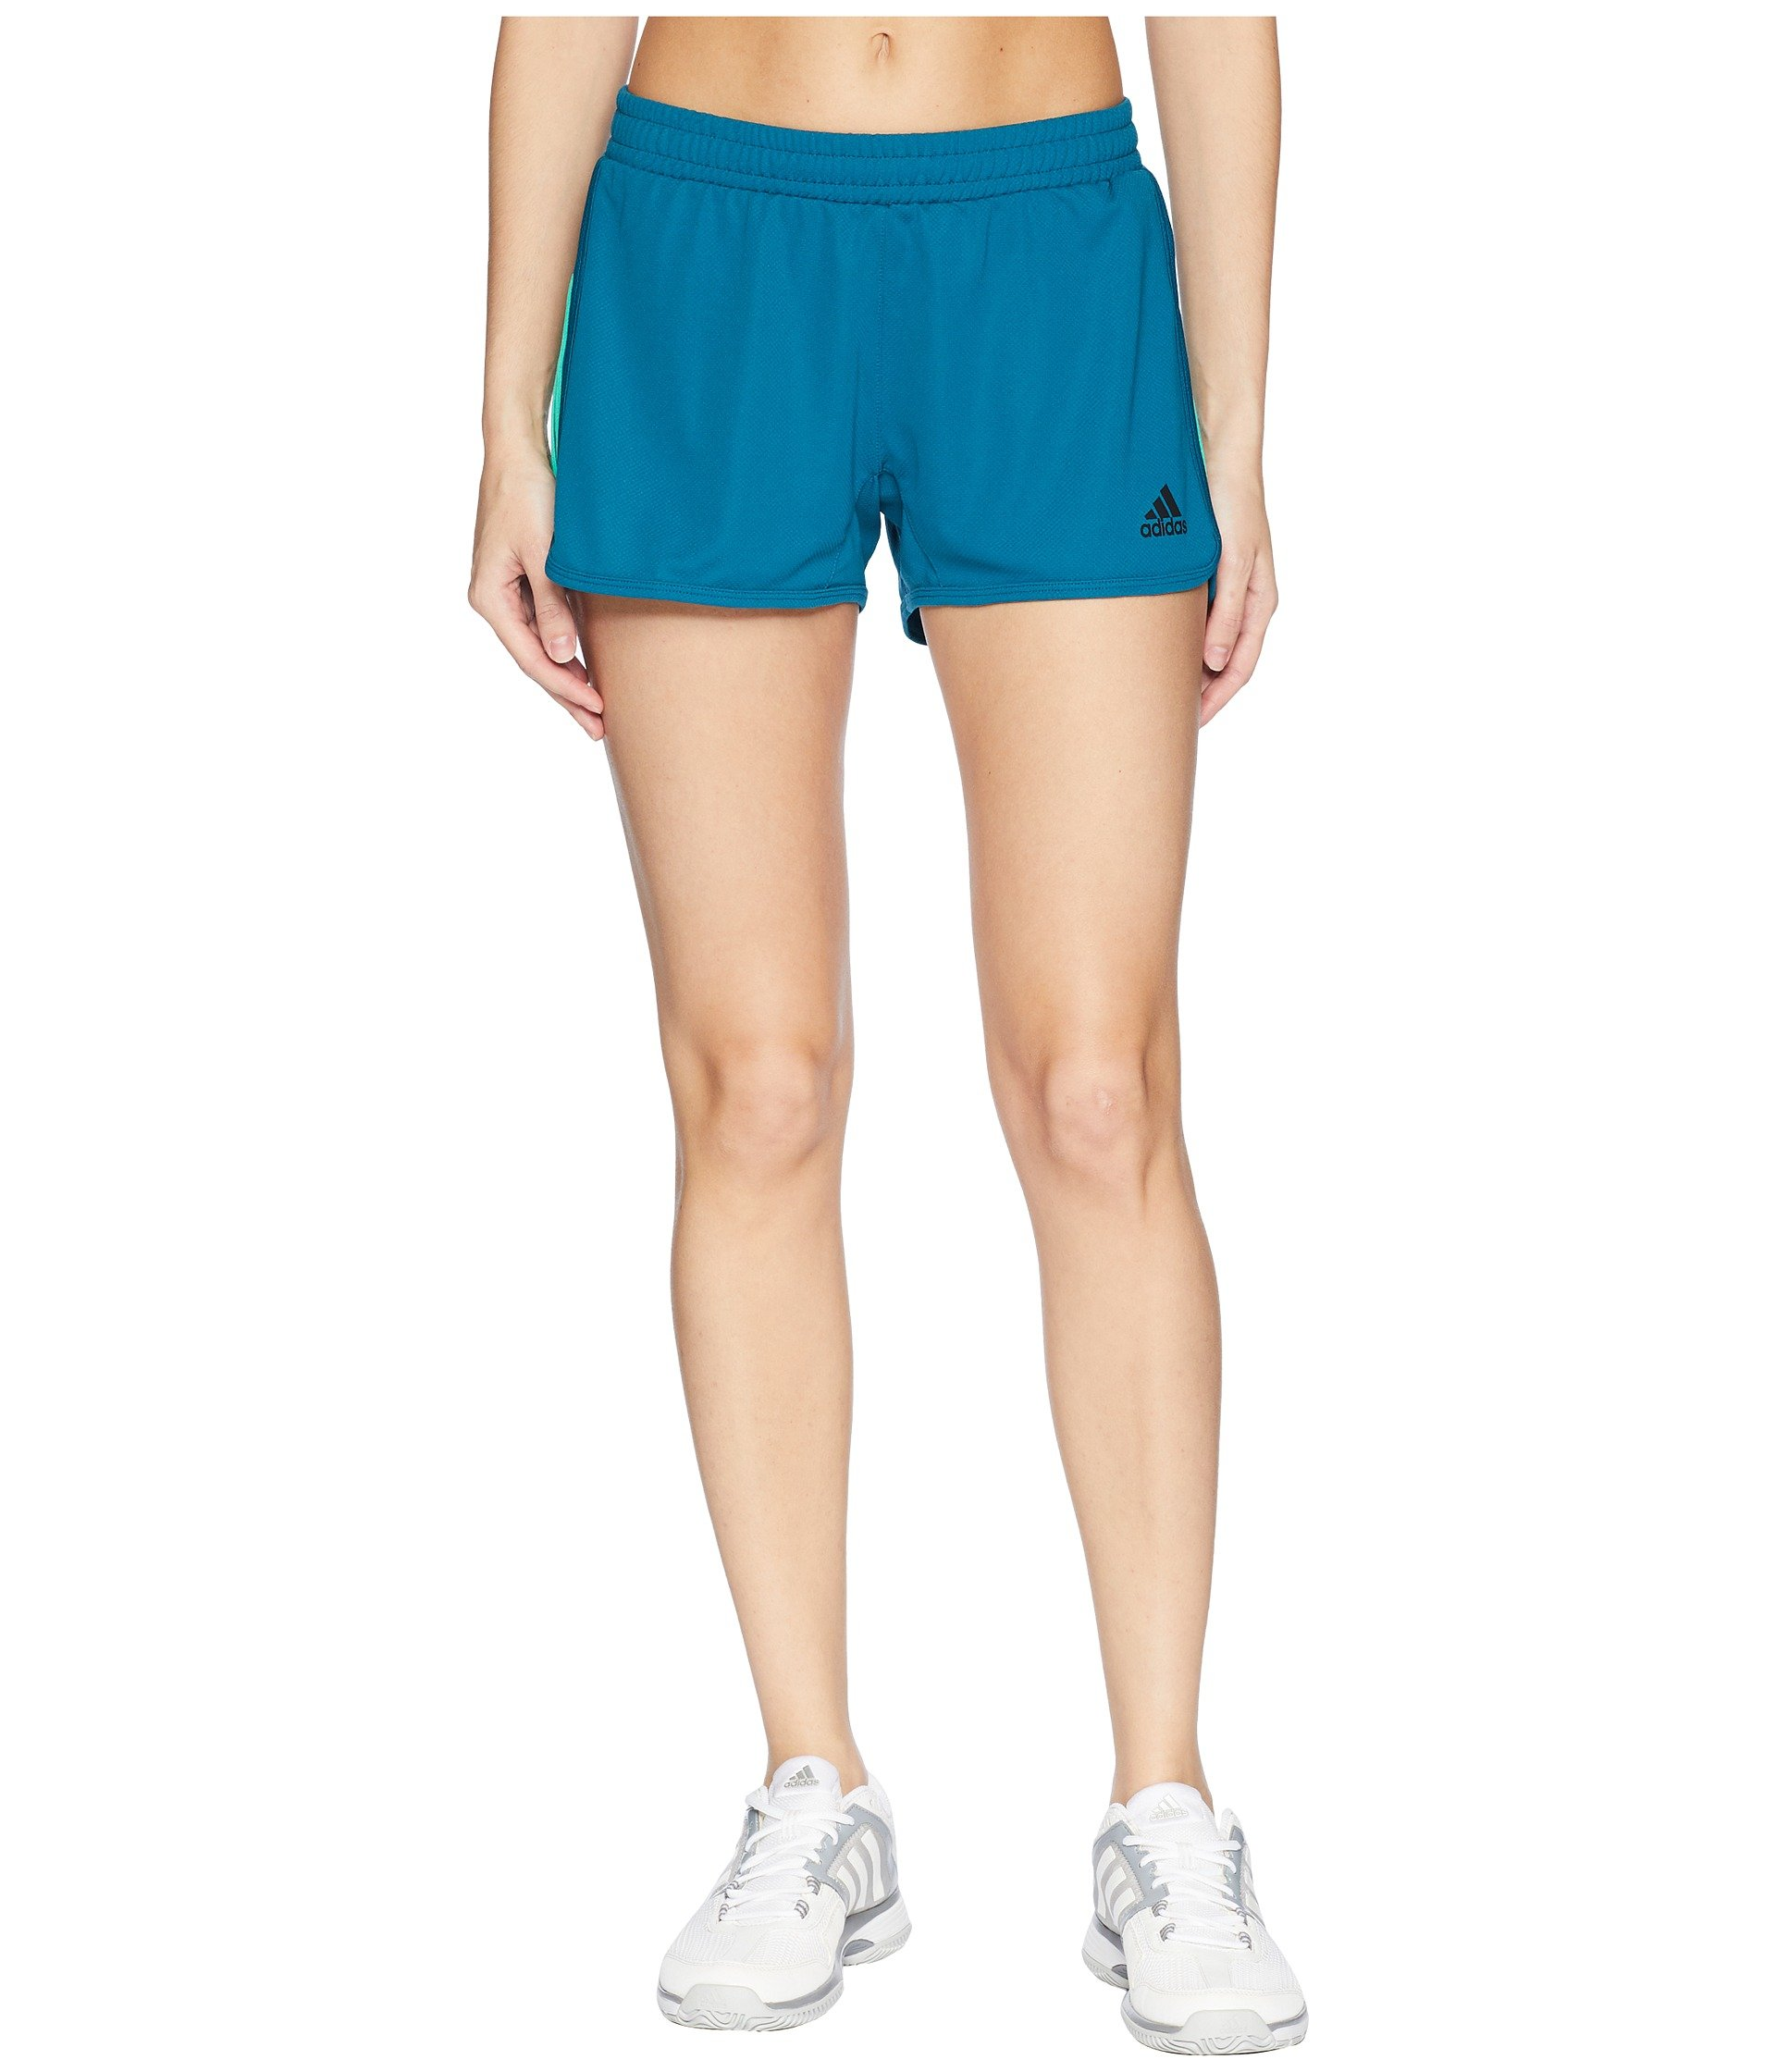 adidas Women's D2m Knit Shorts Real Teal Small 3 3